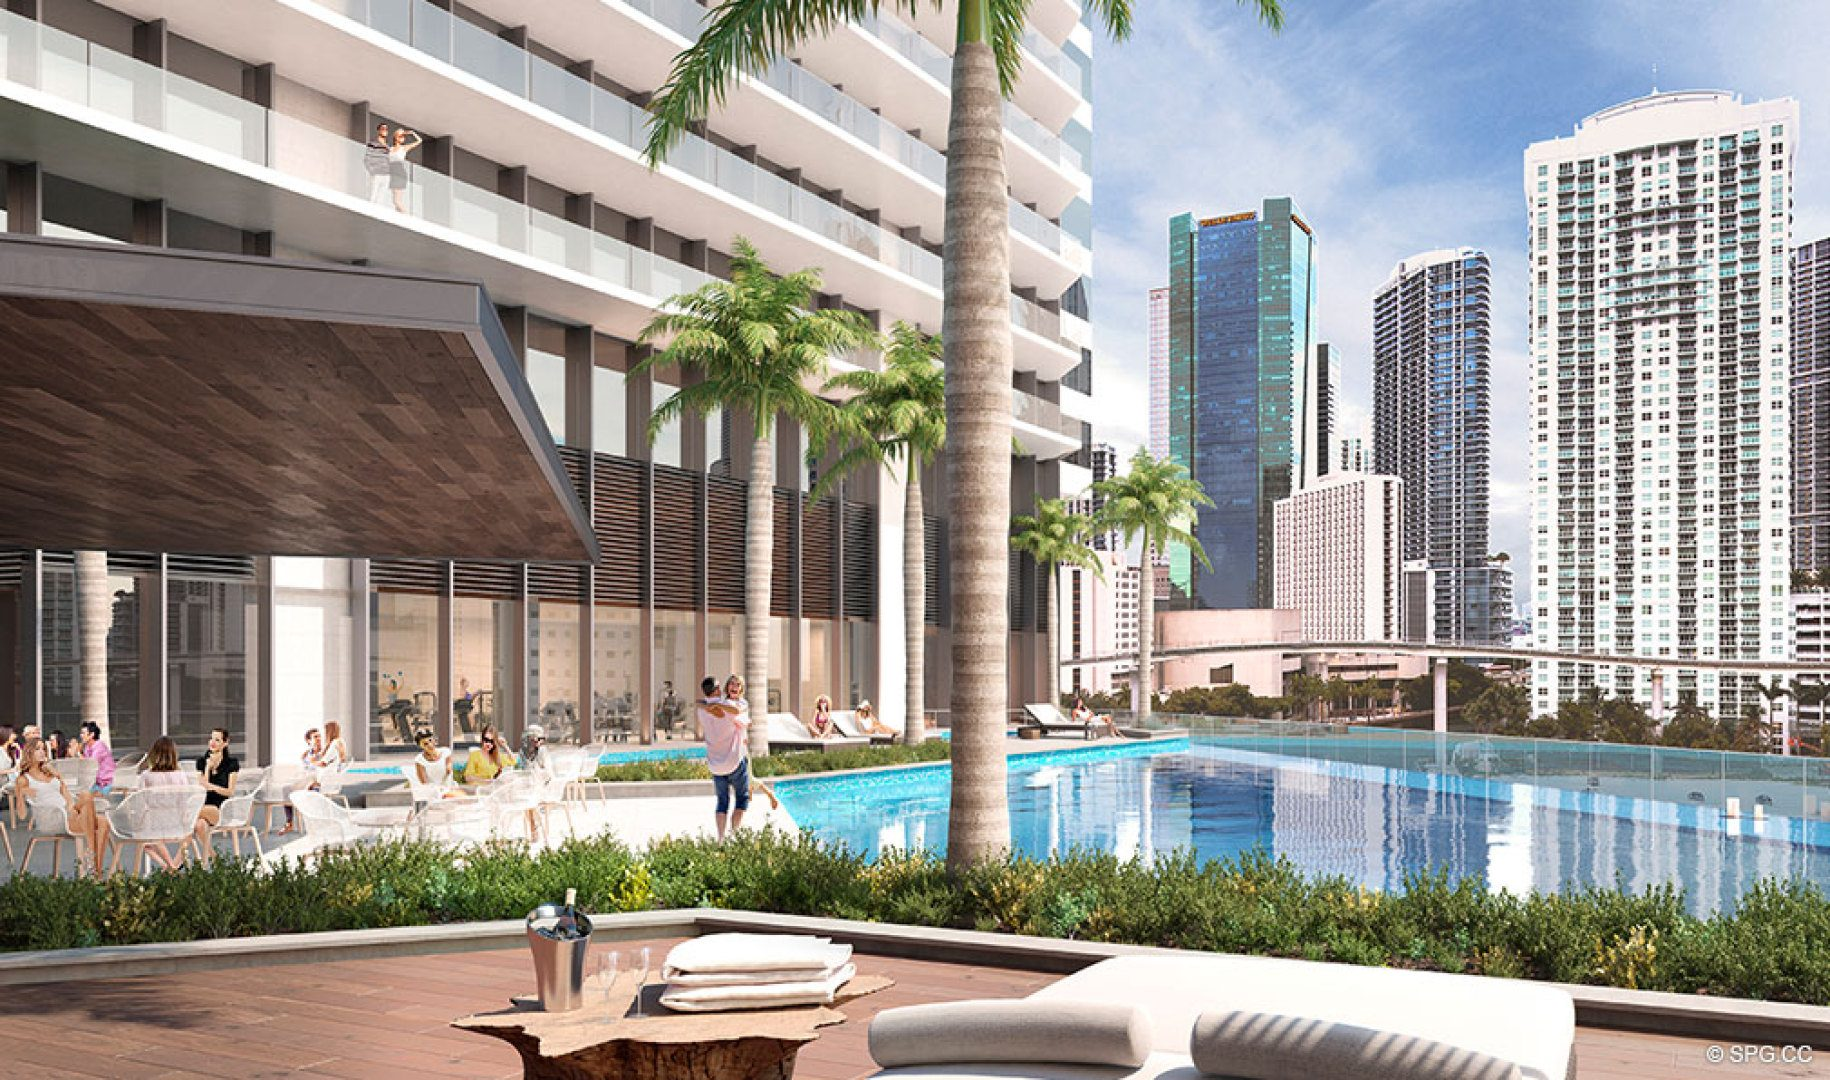 Pool Area at One River Point, Luxury Waterfront Condos in Miami, Florida 33130